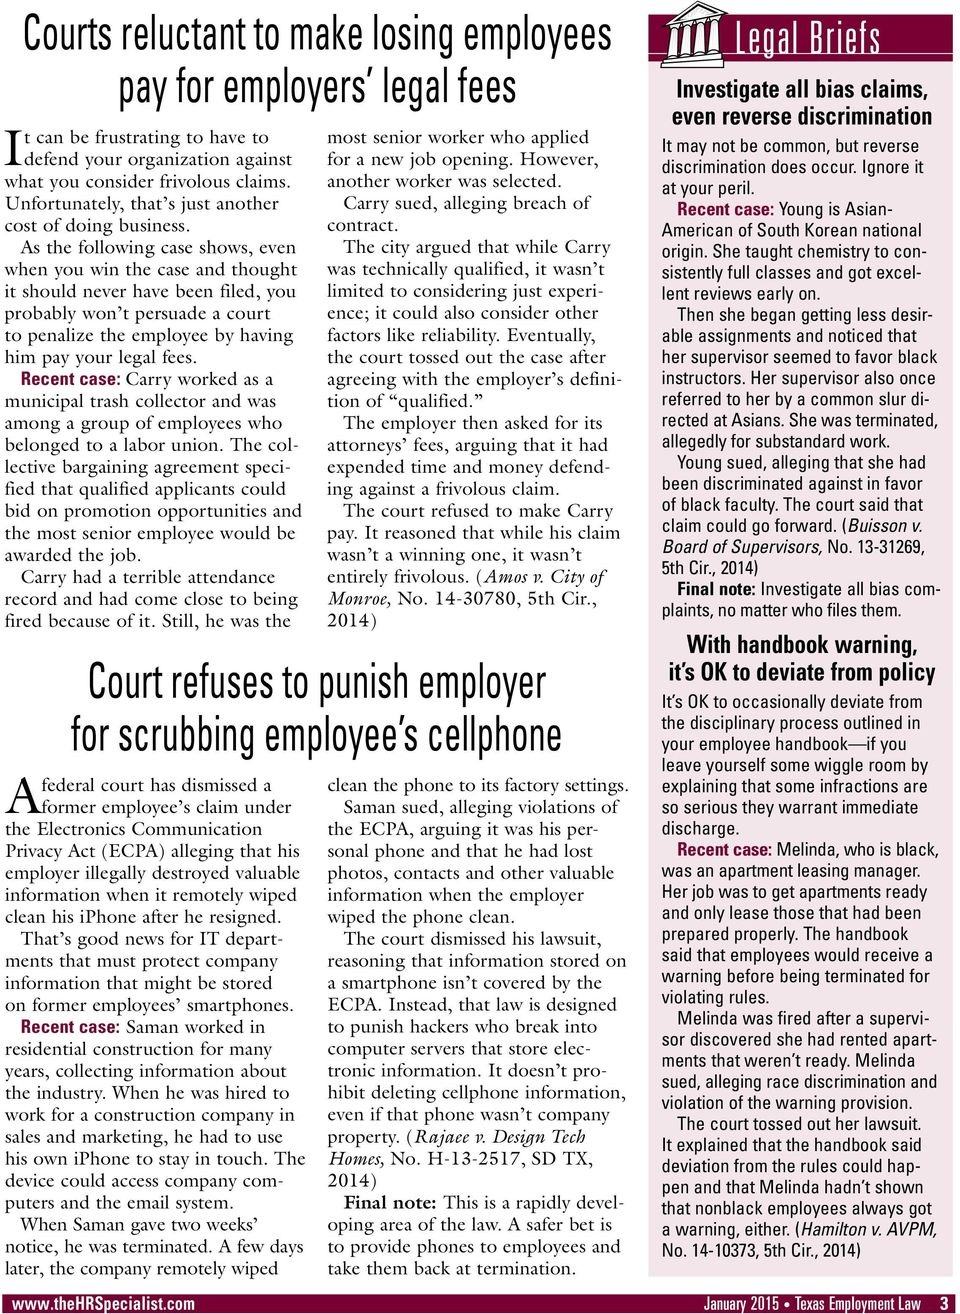 As the following case shows, even when you win the case and thought it should never have been filed, you probably won t persuade a court to penalize the employee by having him pay your legal fees.